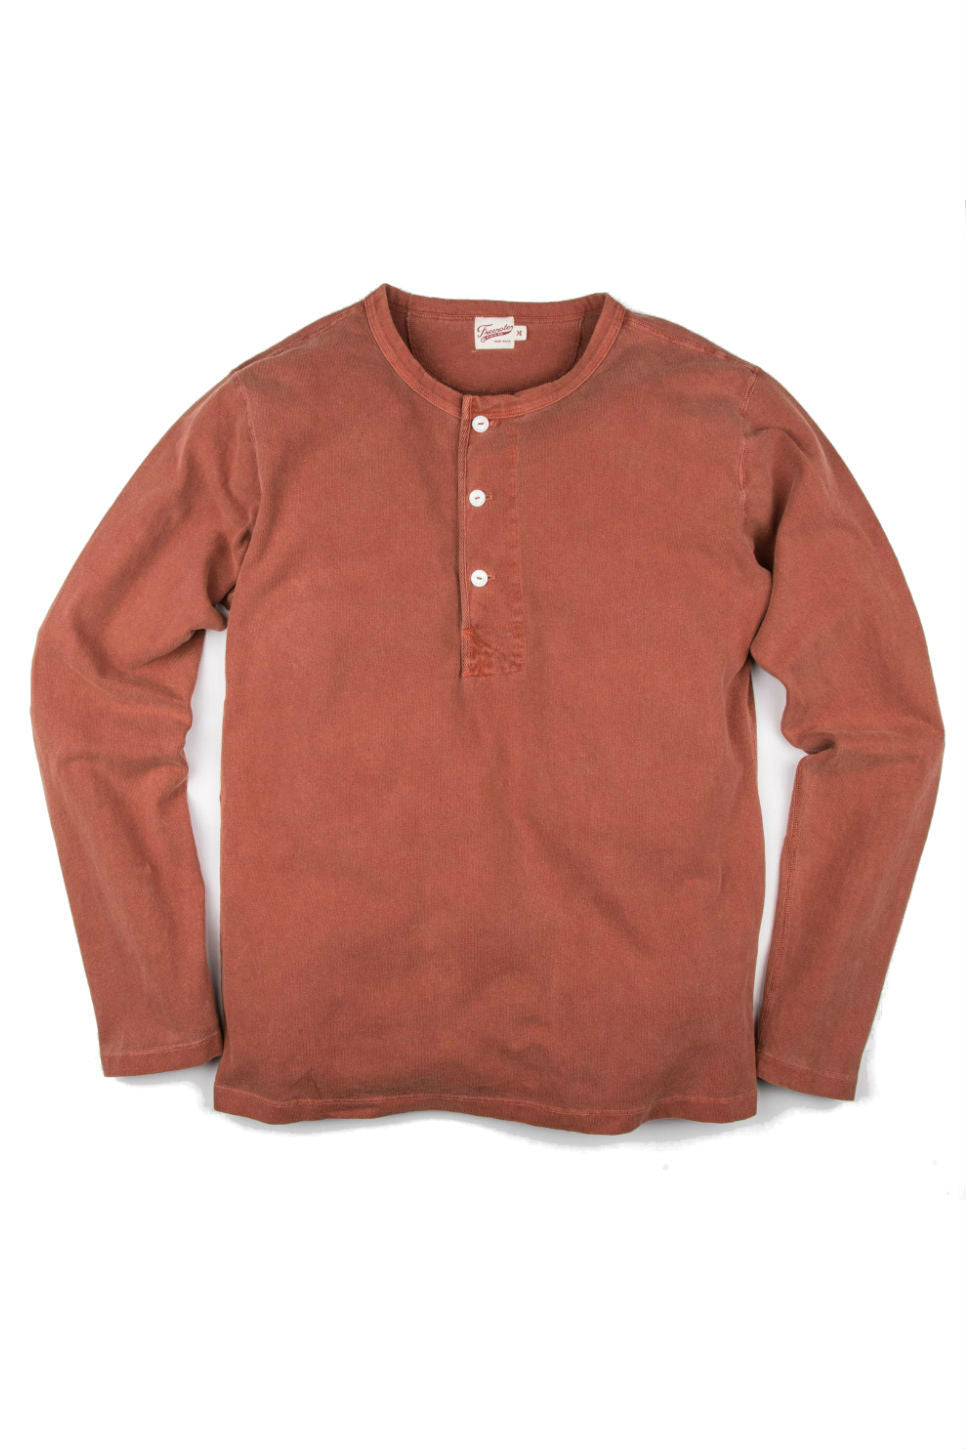 Freenote - 13oz Henley - Rust